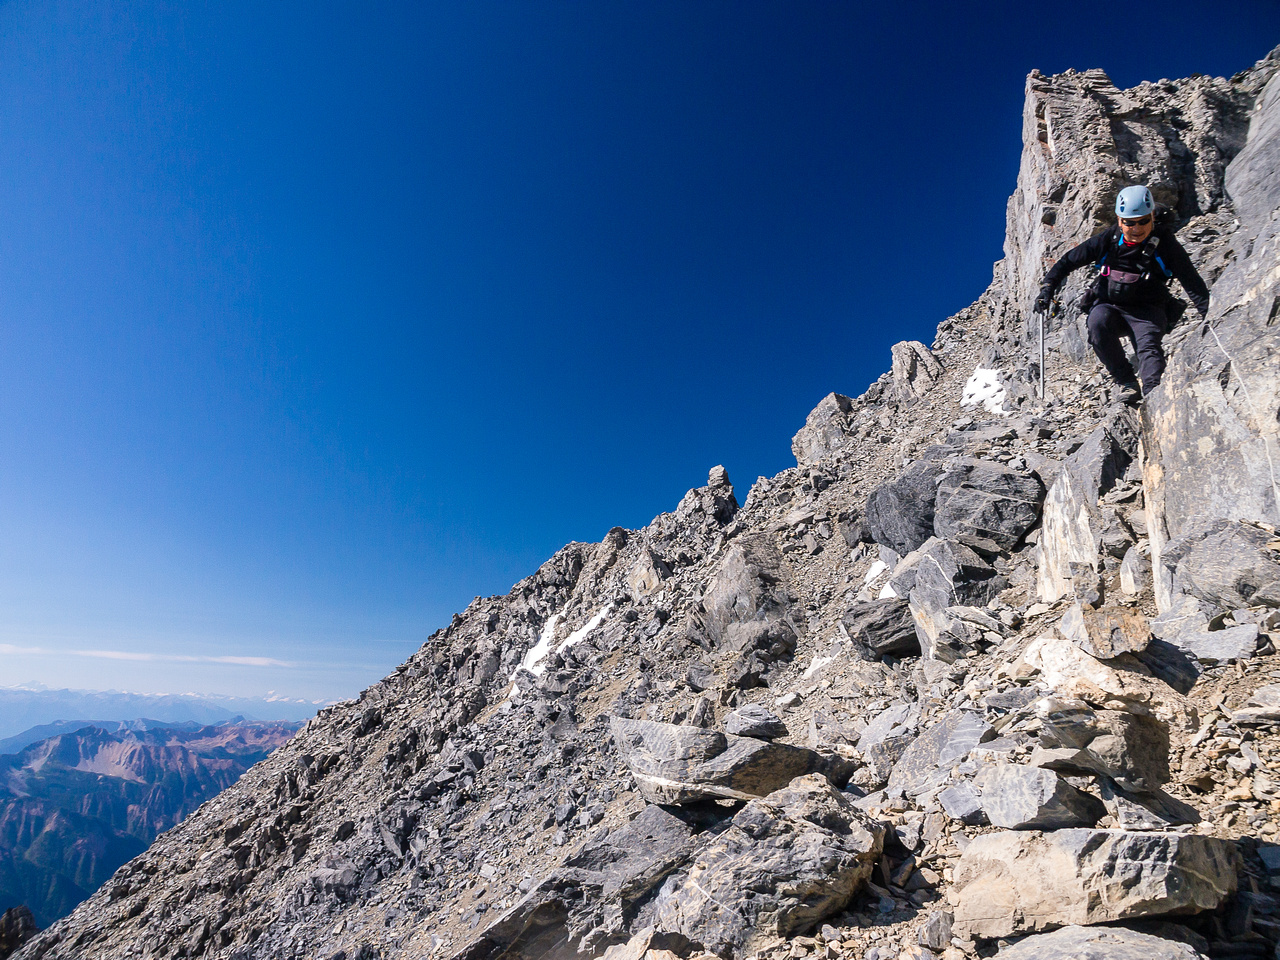 There's still a lot of loose and tricky terrain to down climb after the crux.